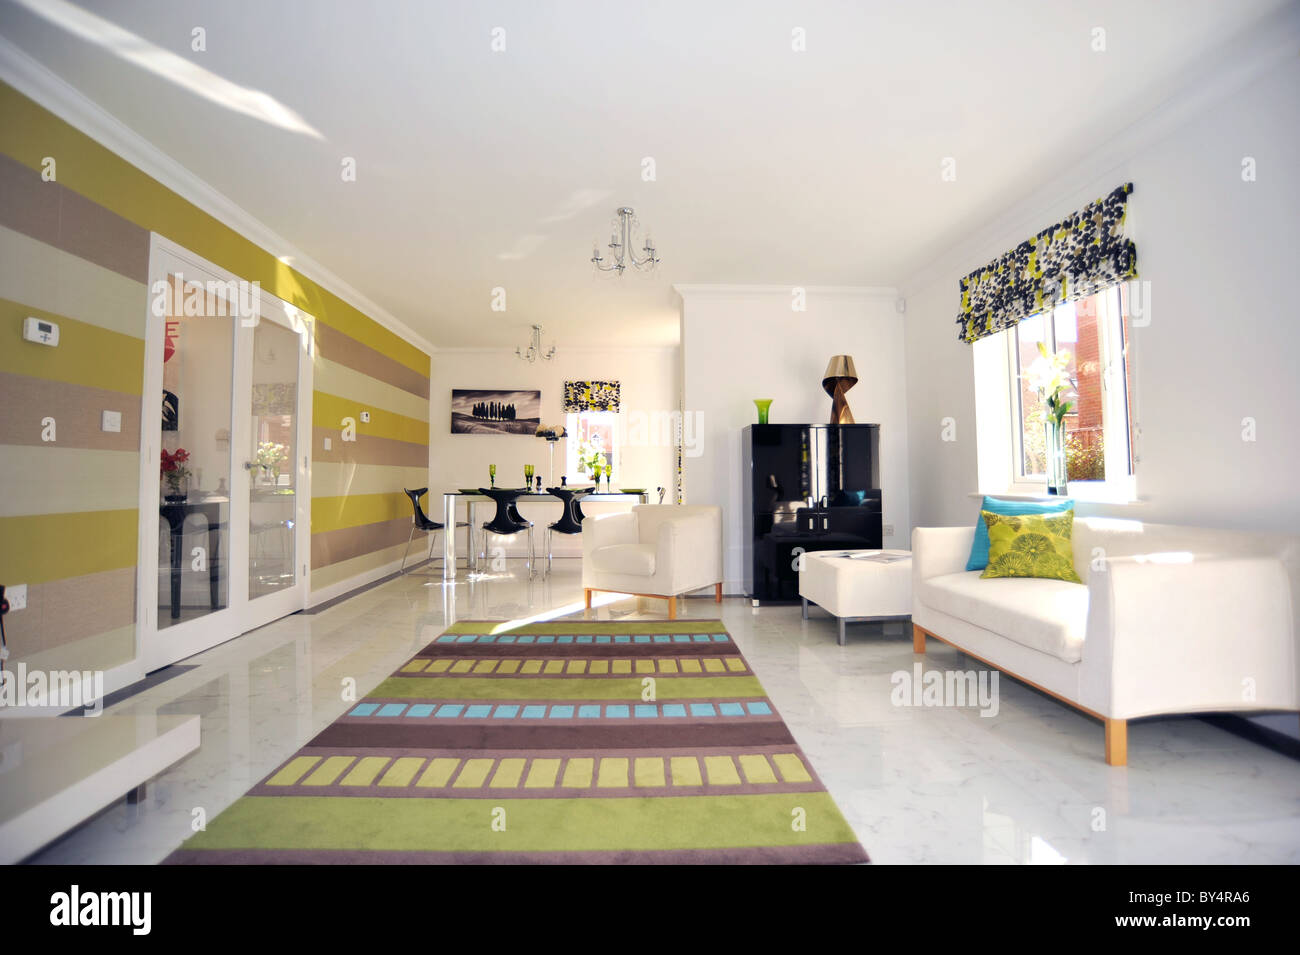 Uk Show Home Lounge Interior Stock Photo Royalty Free